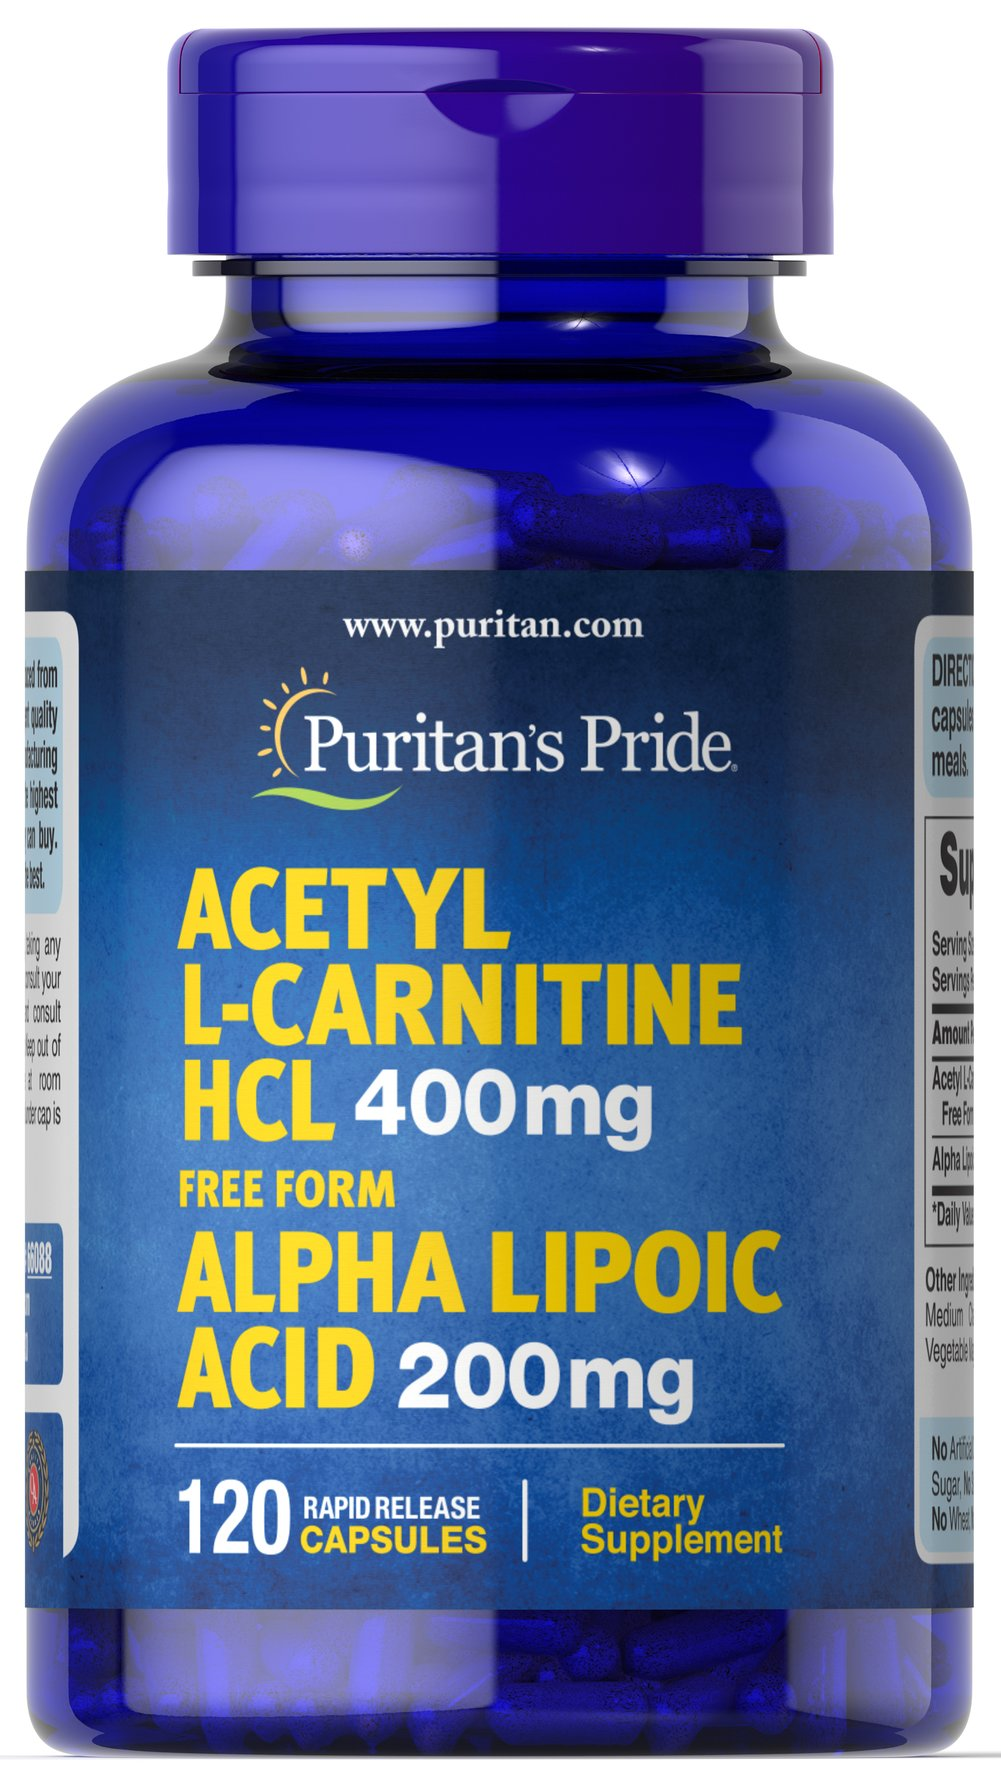 Acetyl L-Carnitine 400 mg with Alpha Lipoic Acid 200 mg <p>Supports Antioxidant Health**</p><p>Supports Metabolic Functioning**</p><p>Use as part of your healthy aging program**</p><p>As we age, our cells are less able to counteract the cell-damaging effects of free radicals and oxidative stress. Oxidative stress can lead to the premature aging of cells.</p> 120 Capsules 400 mg/200 mg $16.99